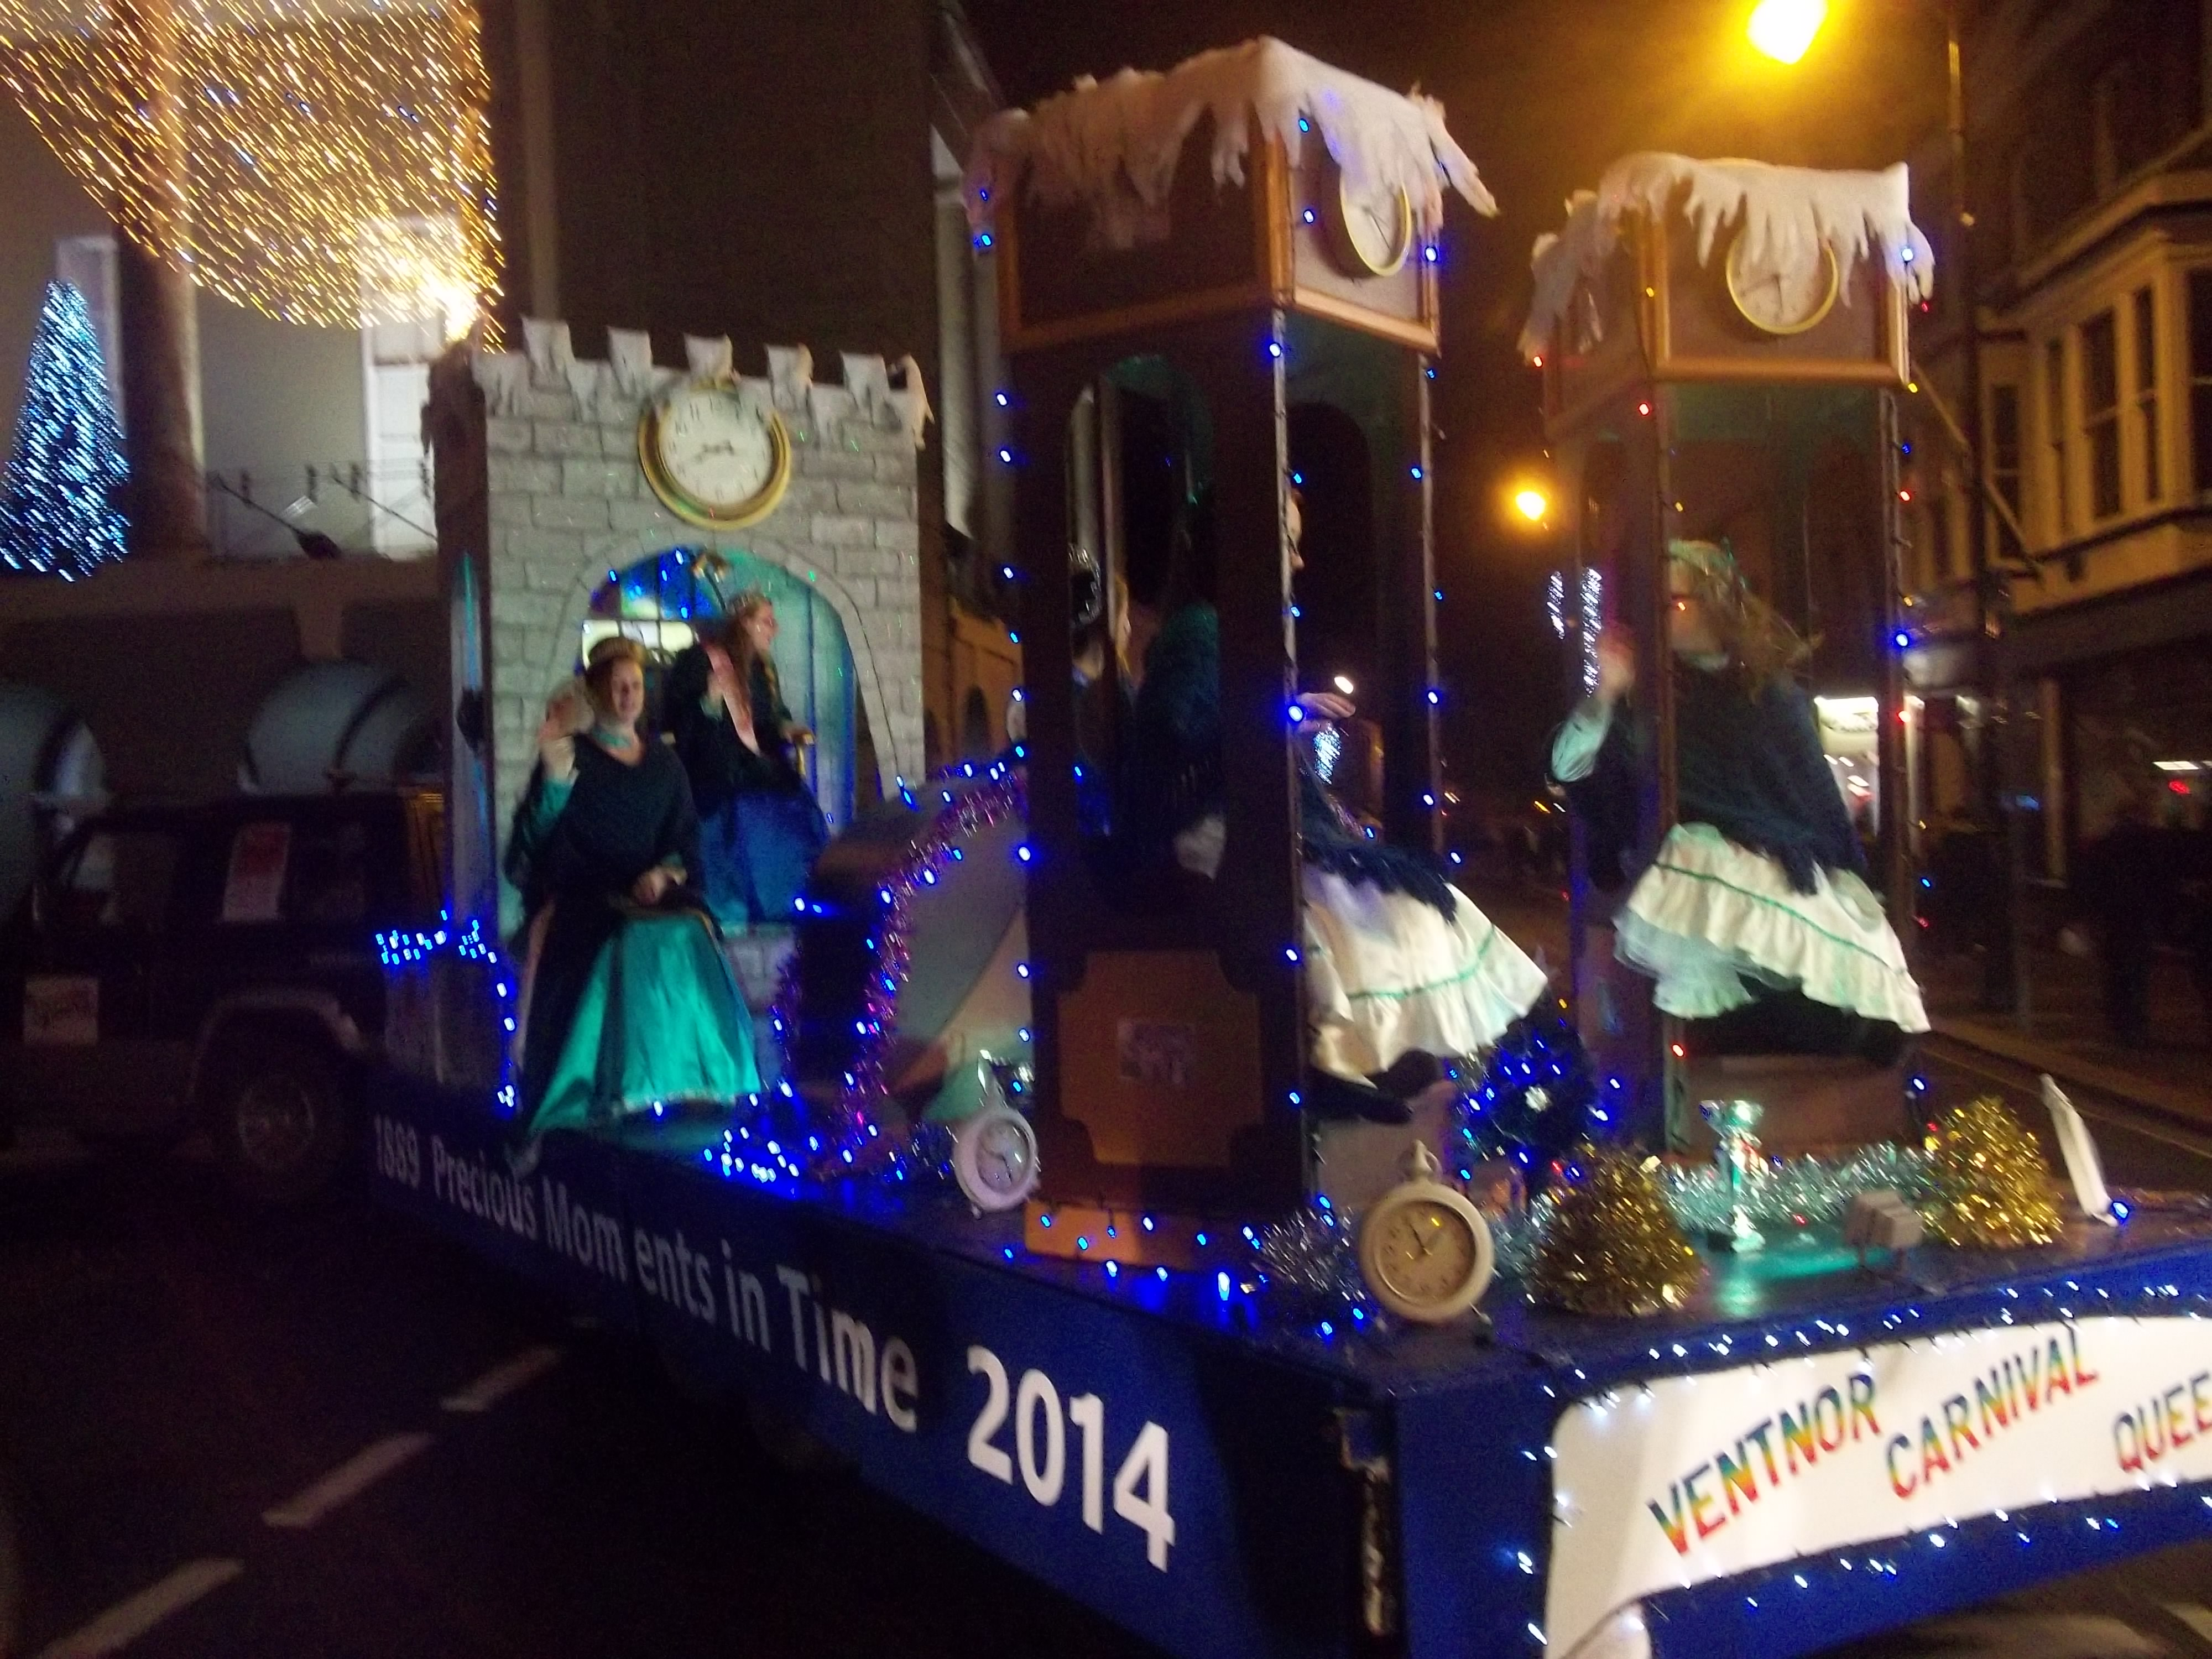 Newport Christmas Carnival- Ventnor Queens float